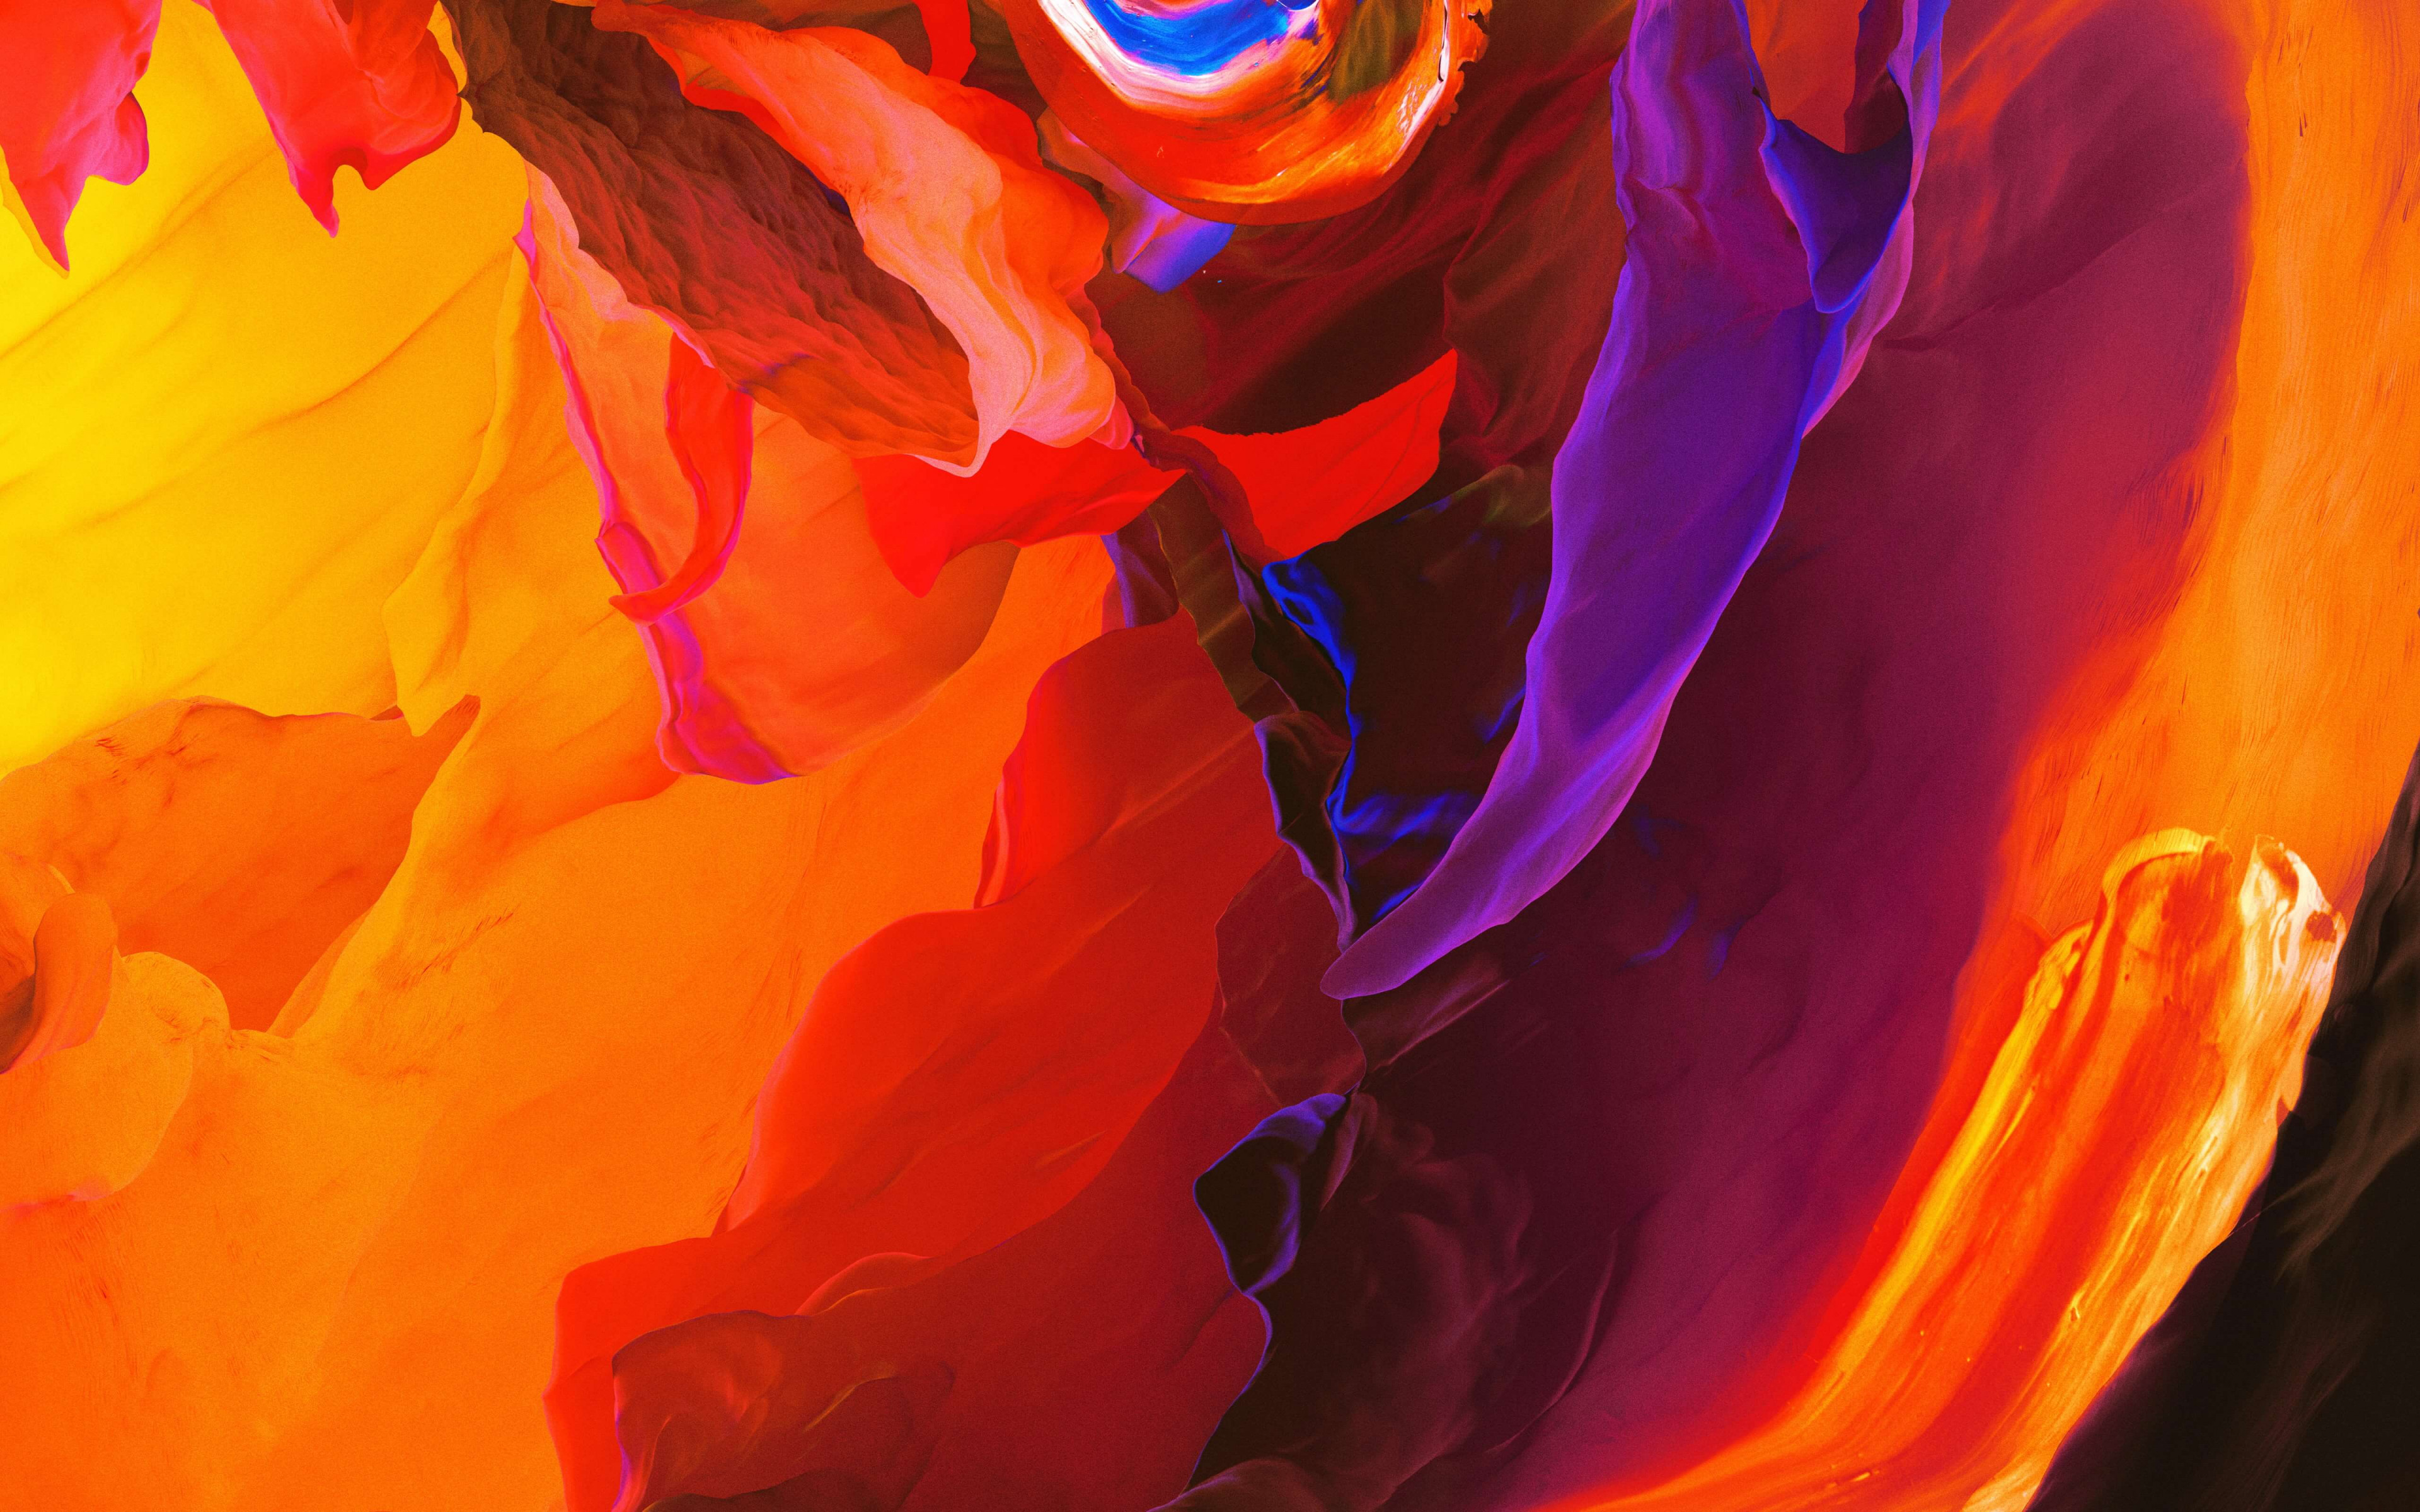 Red Orange Colorful Abstract wallpaper 3840x2400